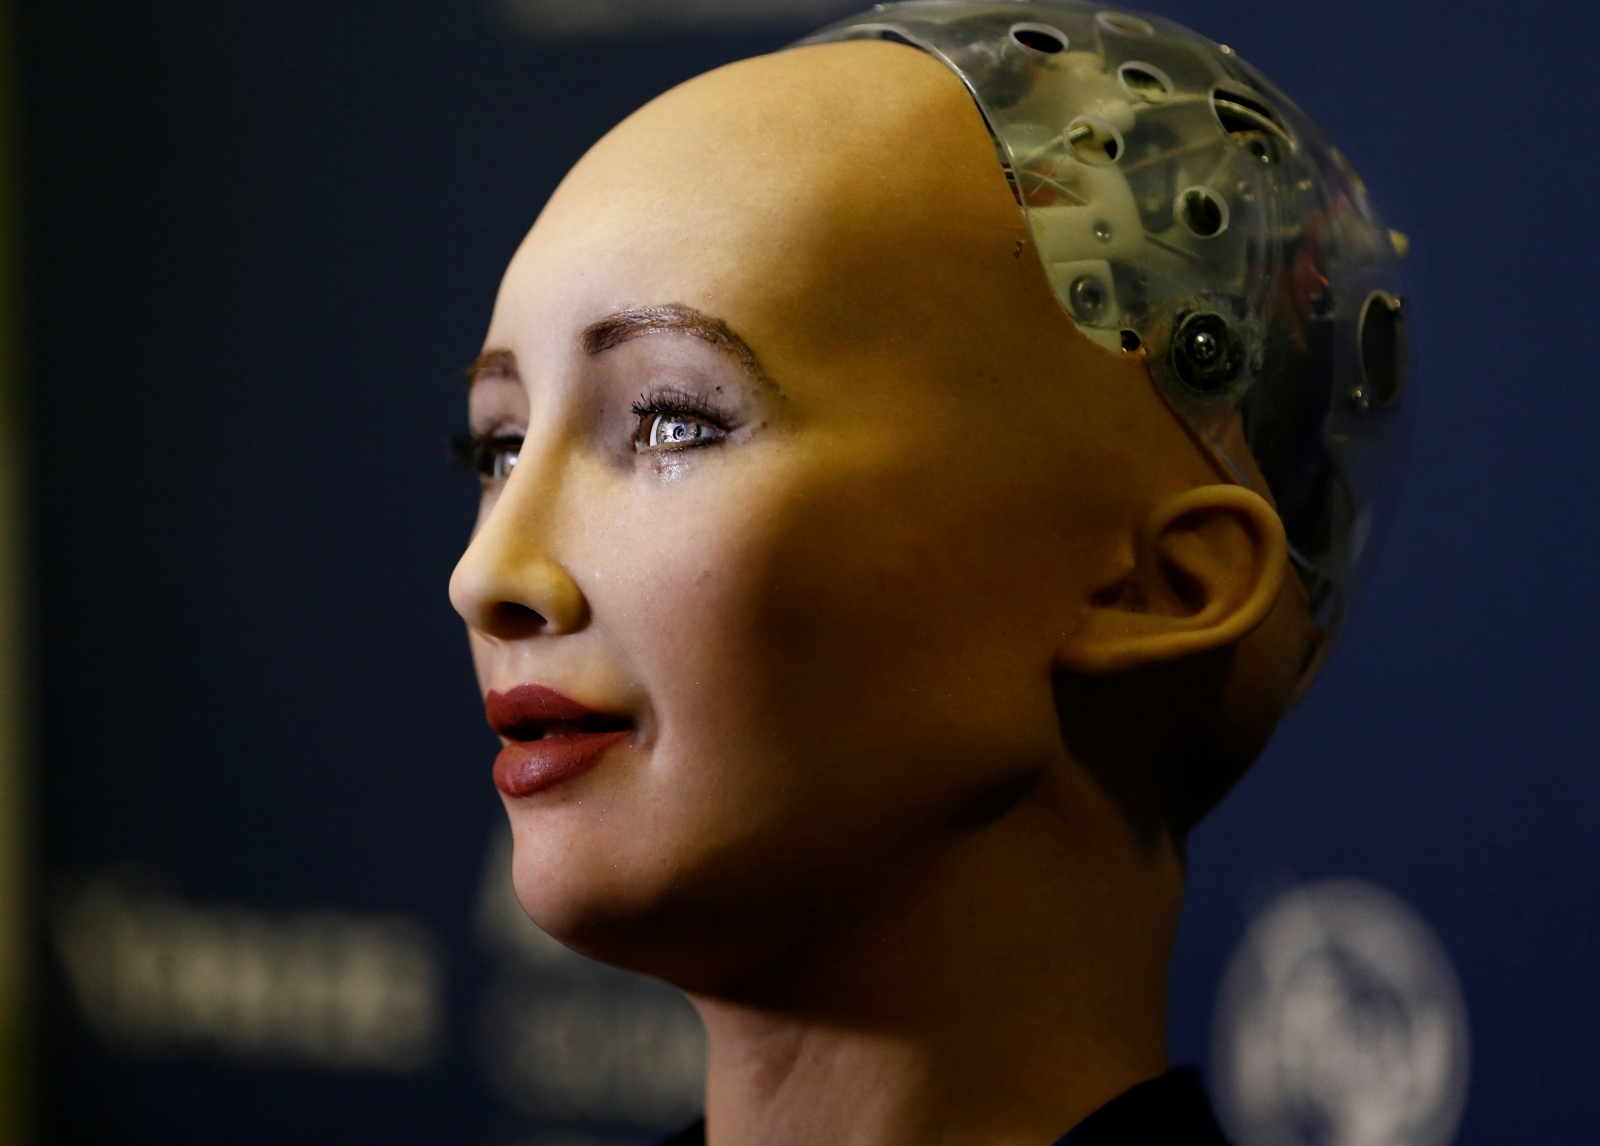 World's first humanoid citizen wants to start a family